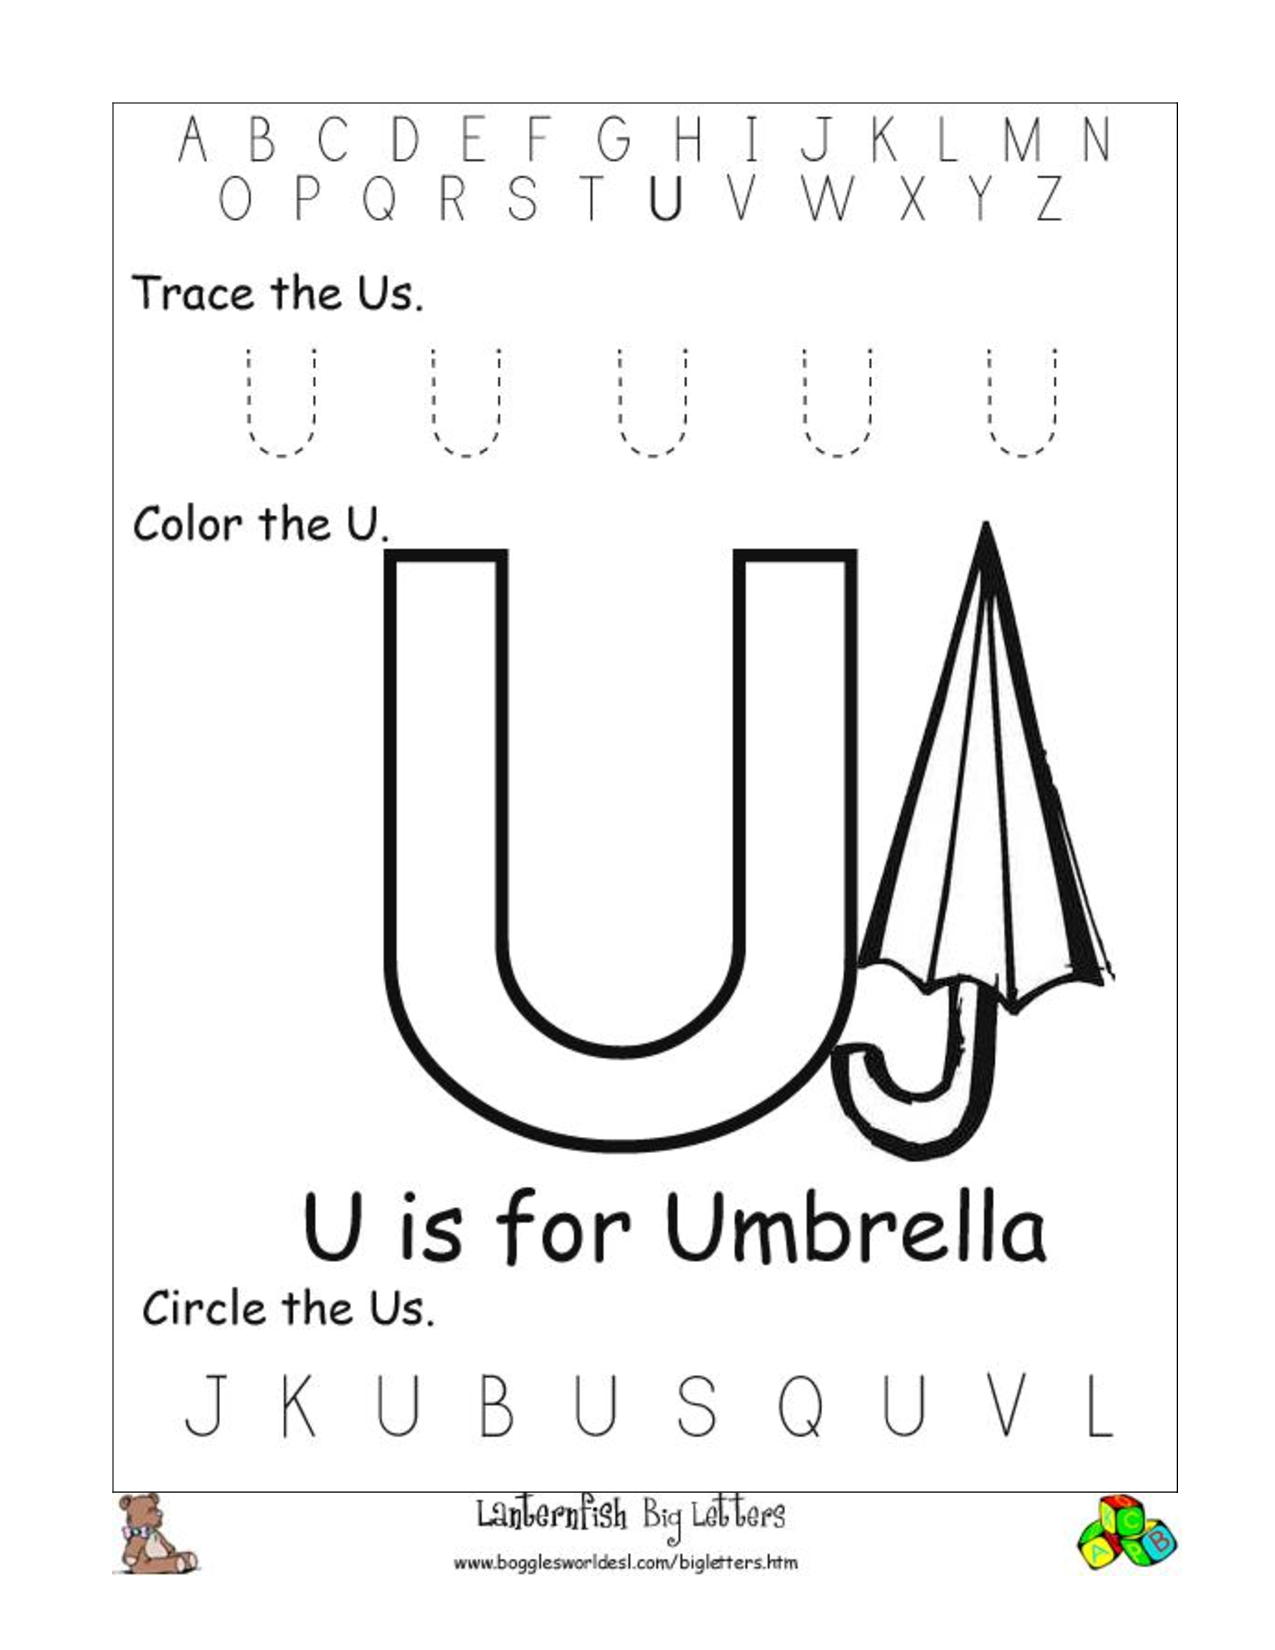 Preschool Activities With The Letter U - coloring pages for kids and ...